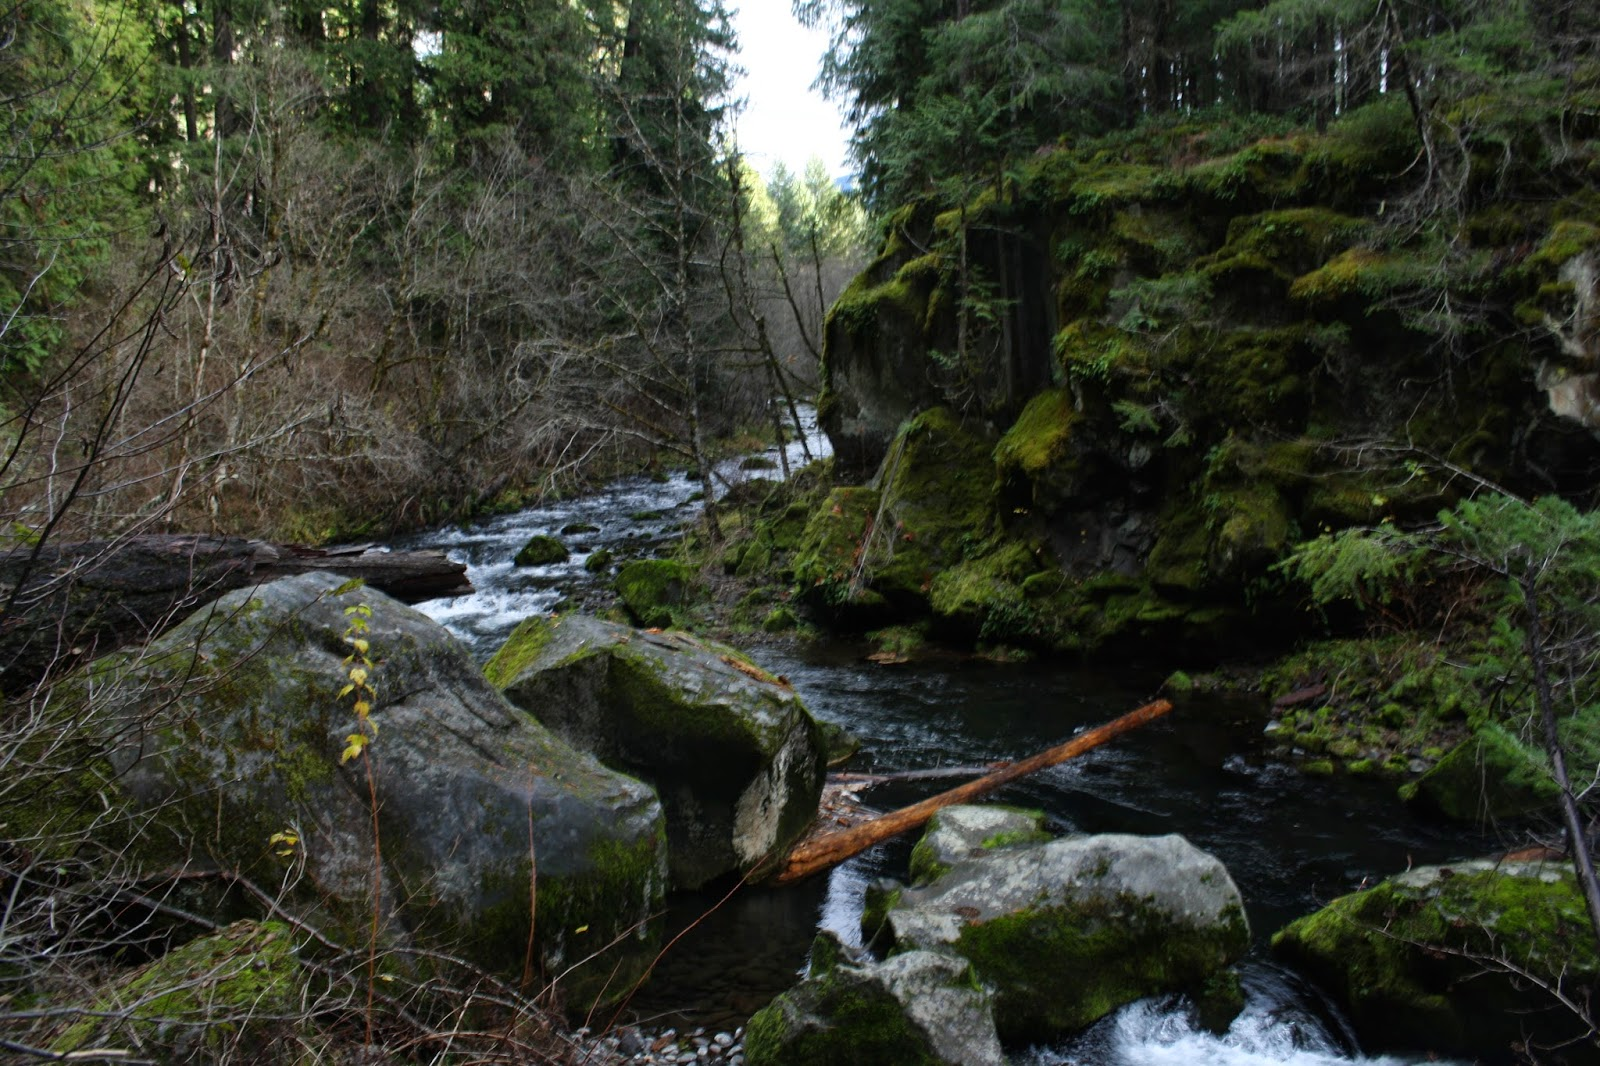 Hike Mondays : Umpqua River and hot springs, Tokatee Falls (North